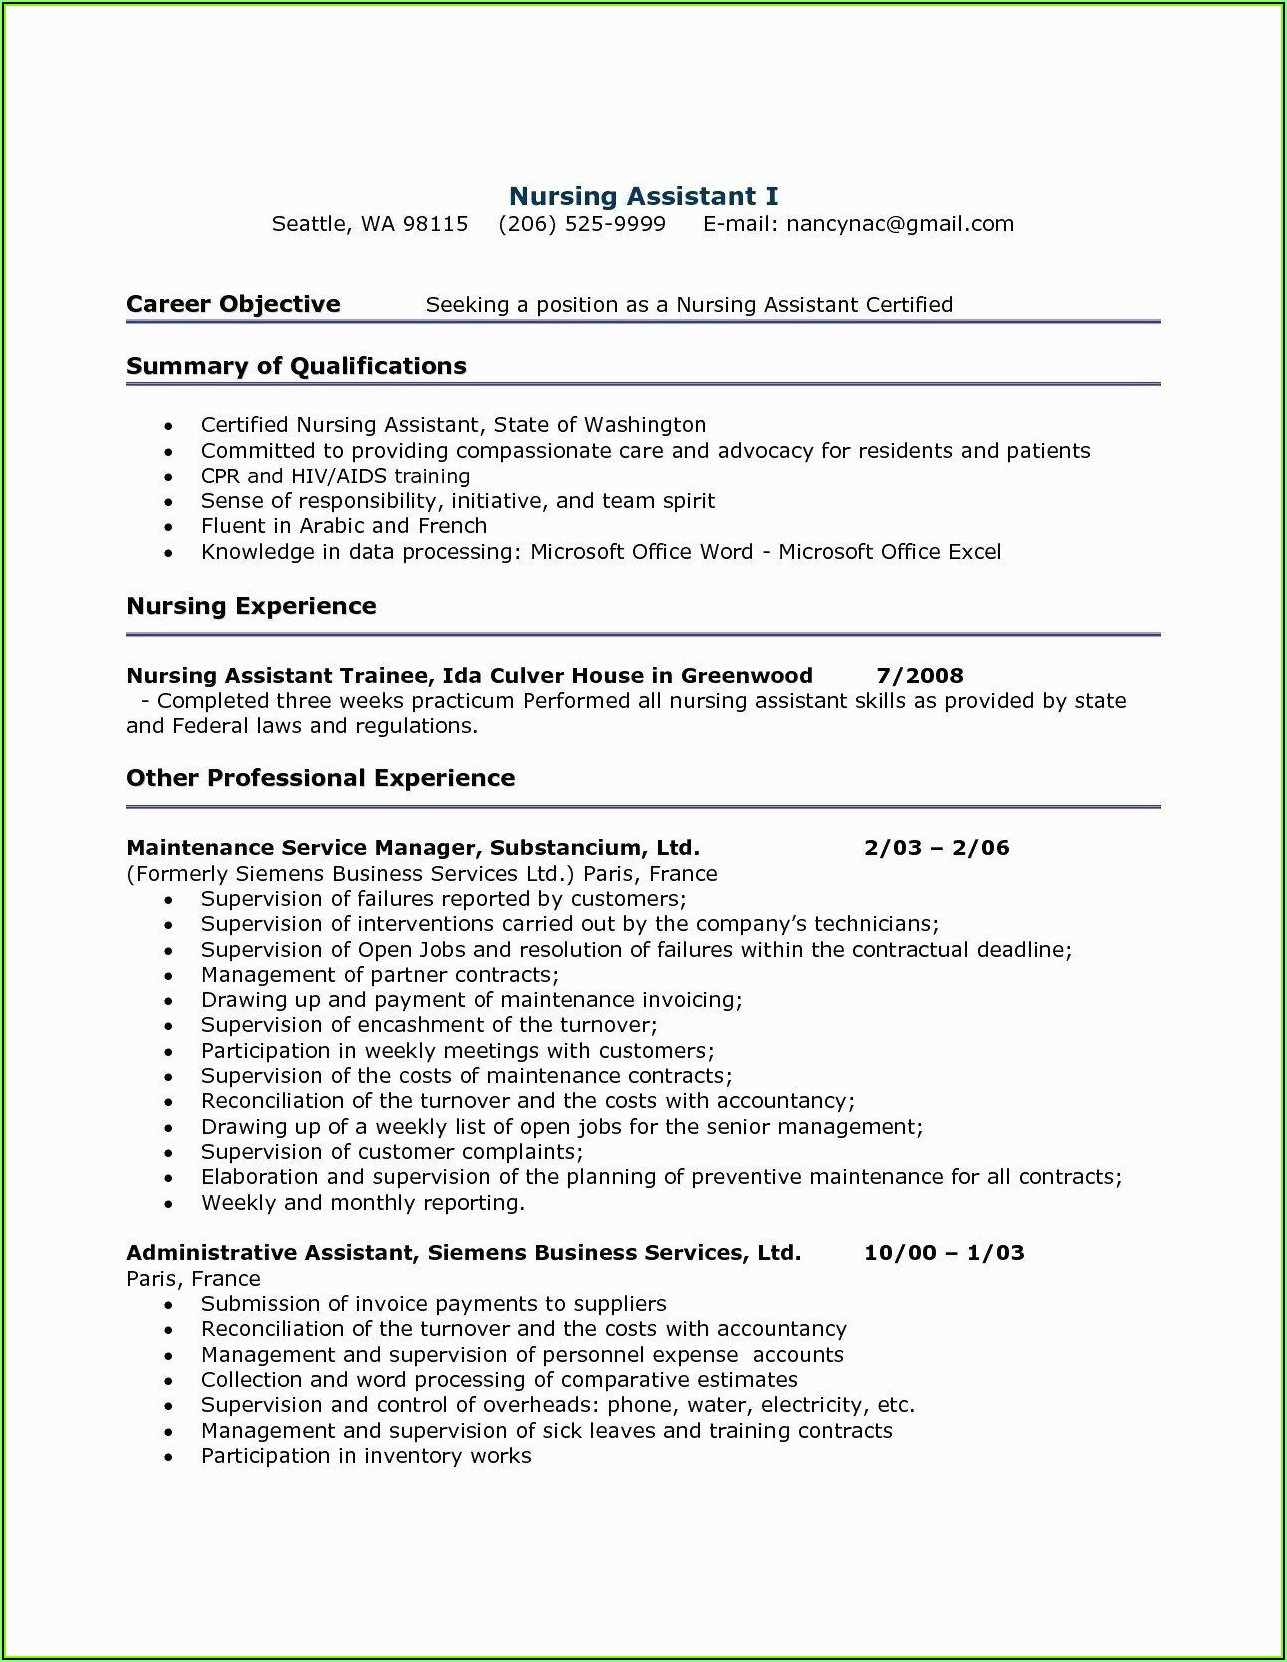 Sample Of Resume For Nurses With Job Description